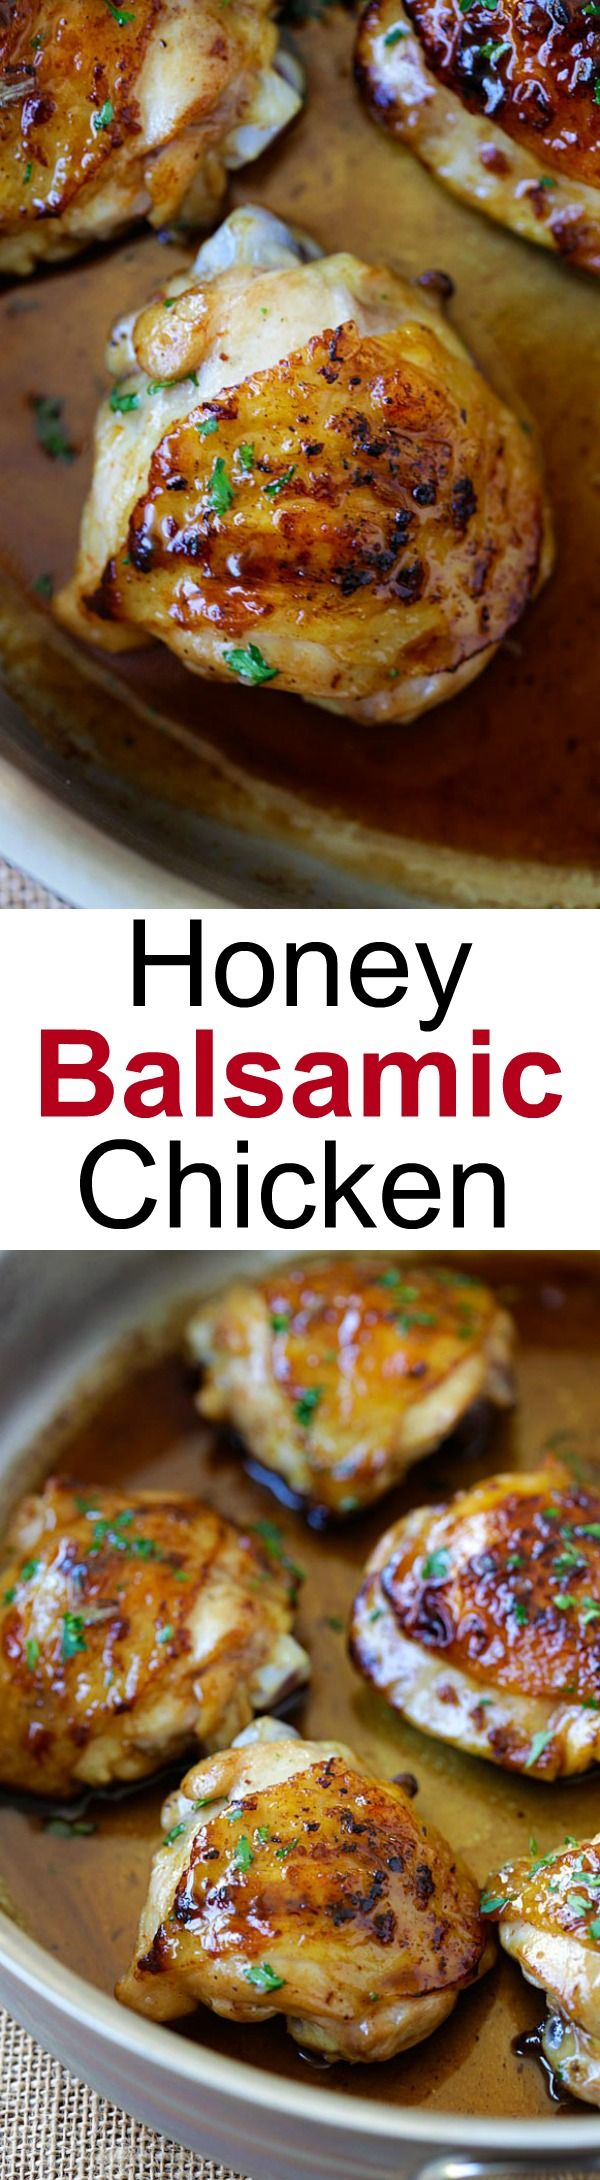 Honey Balsamic Chicken – the easiest skillet chicken with sweet and savory honey balsamic sauce. Homemade chicken dinner is so good with this recipe | rasamalaysia.com